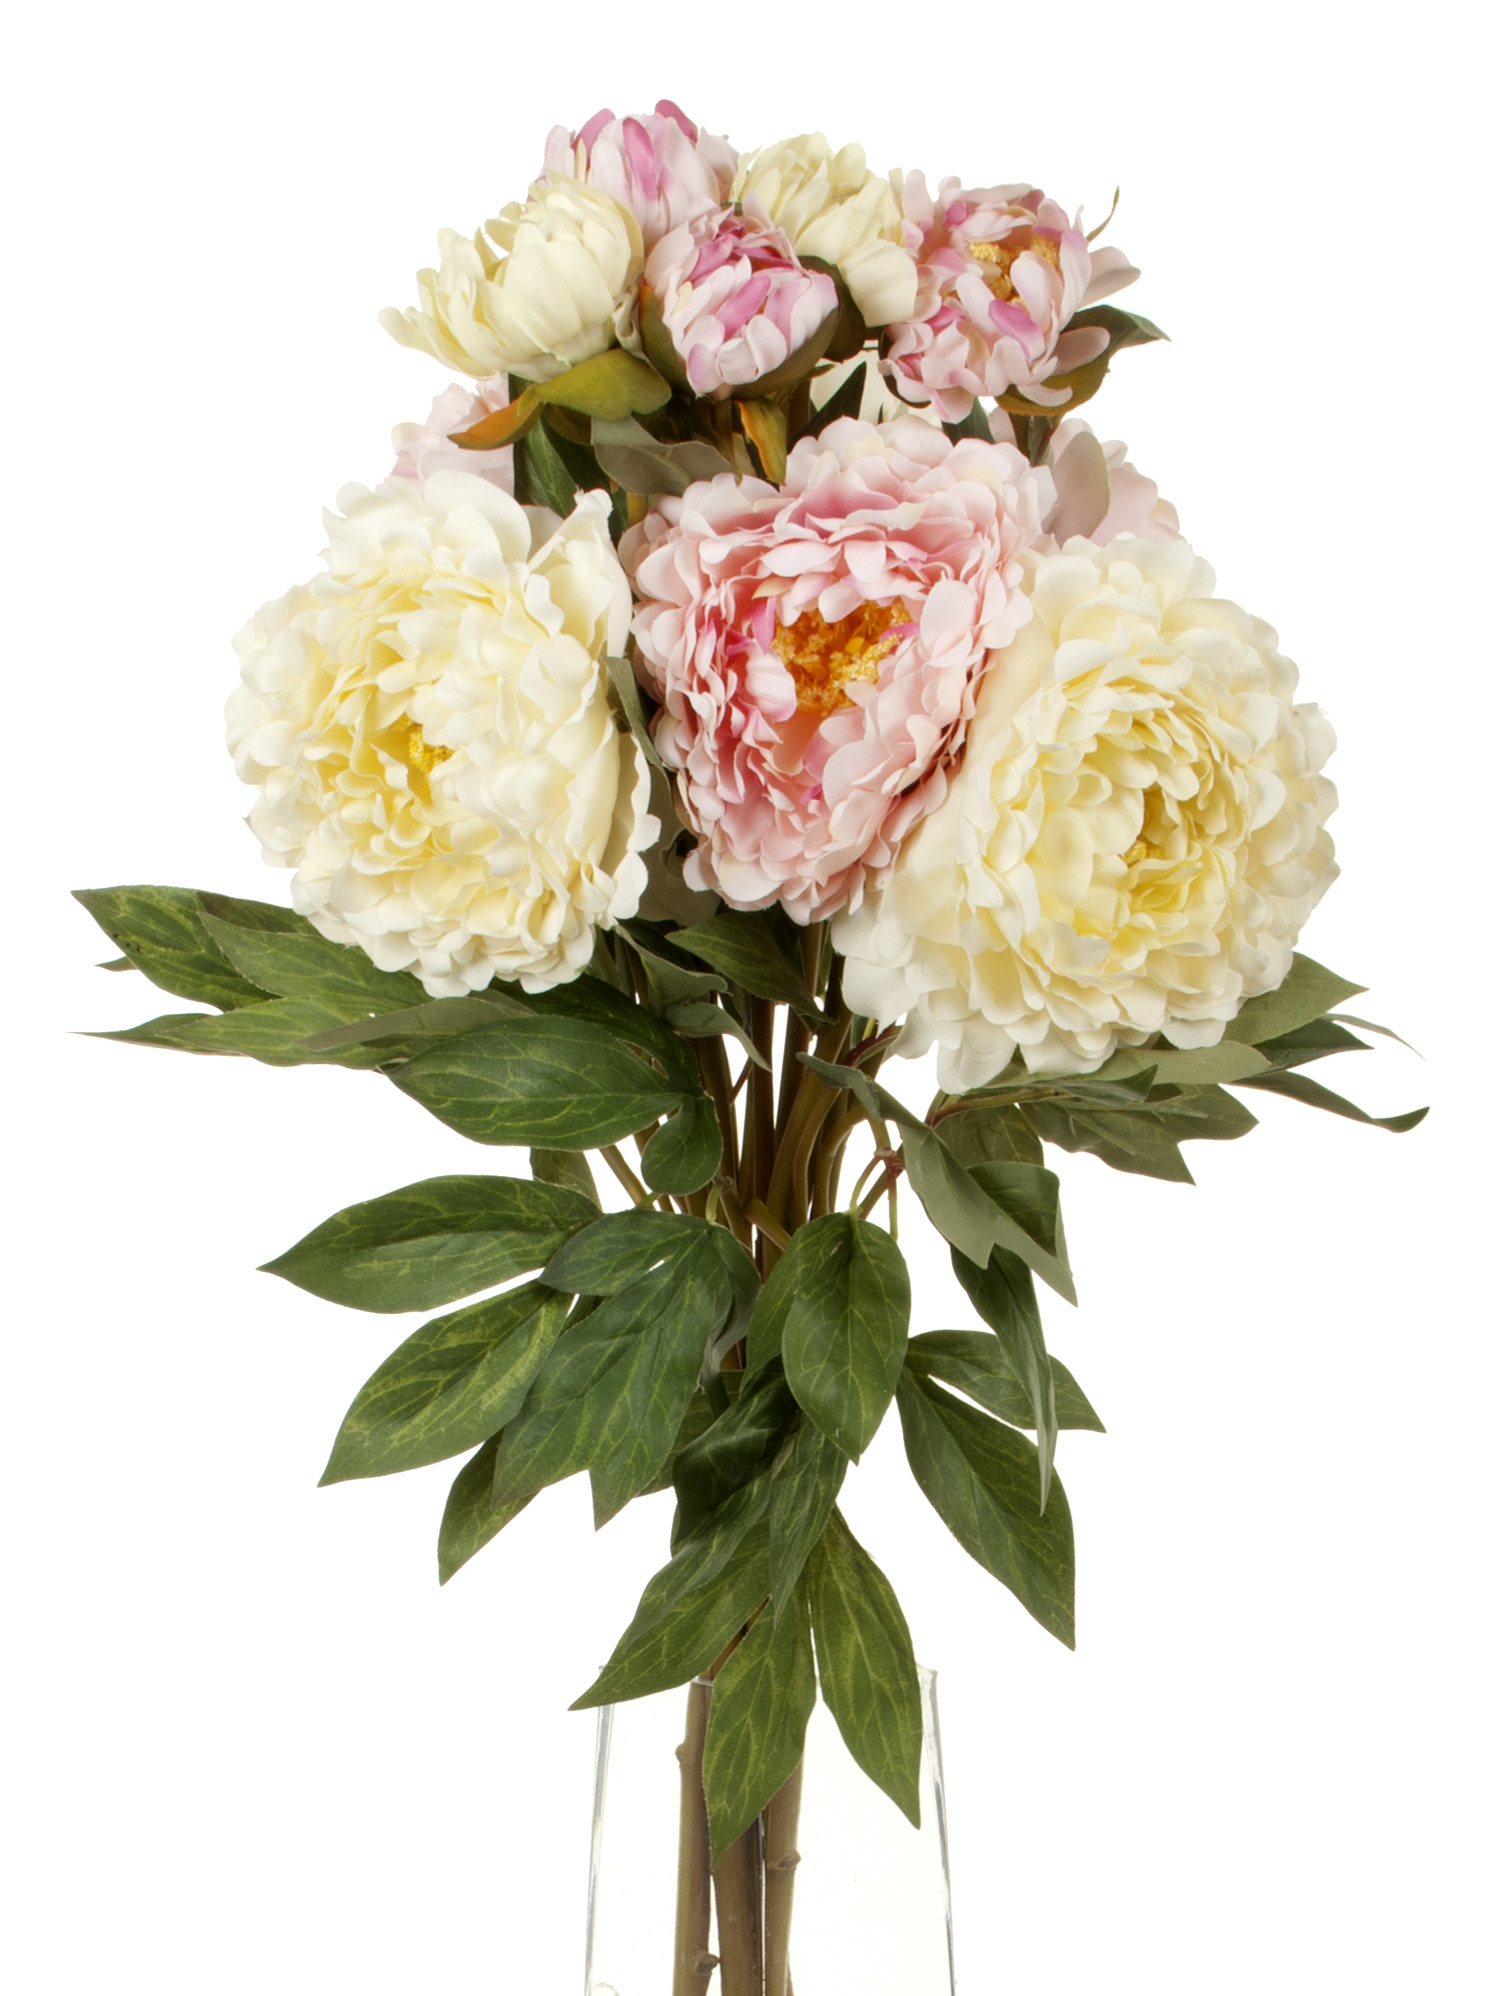 View large Artificial 80cm Single Stem Double Headed Peonies x 6 (3 x White and 3 x Pale Pink) - Artificial Luxury Silk Flower Range UK